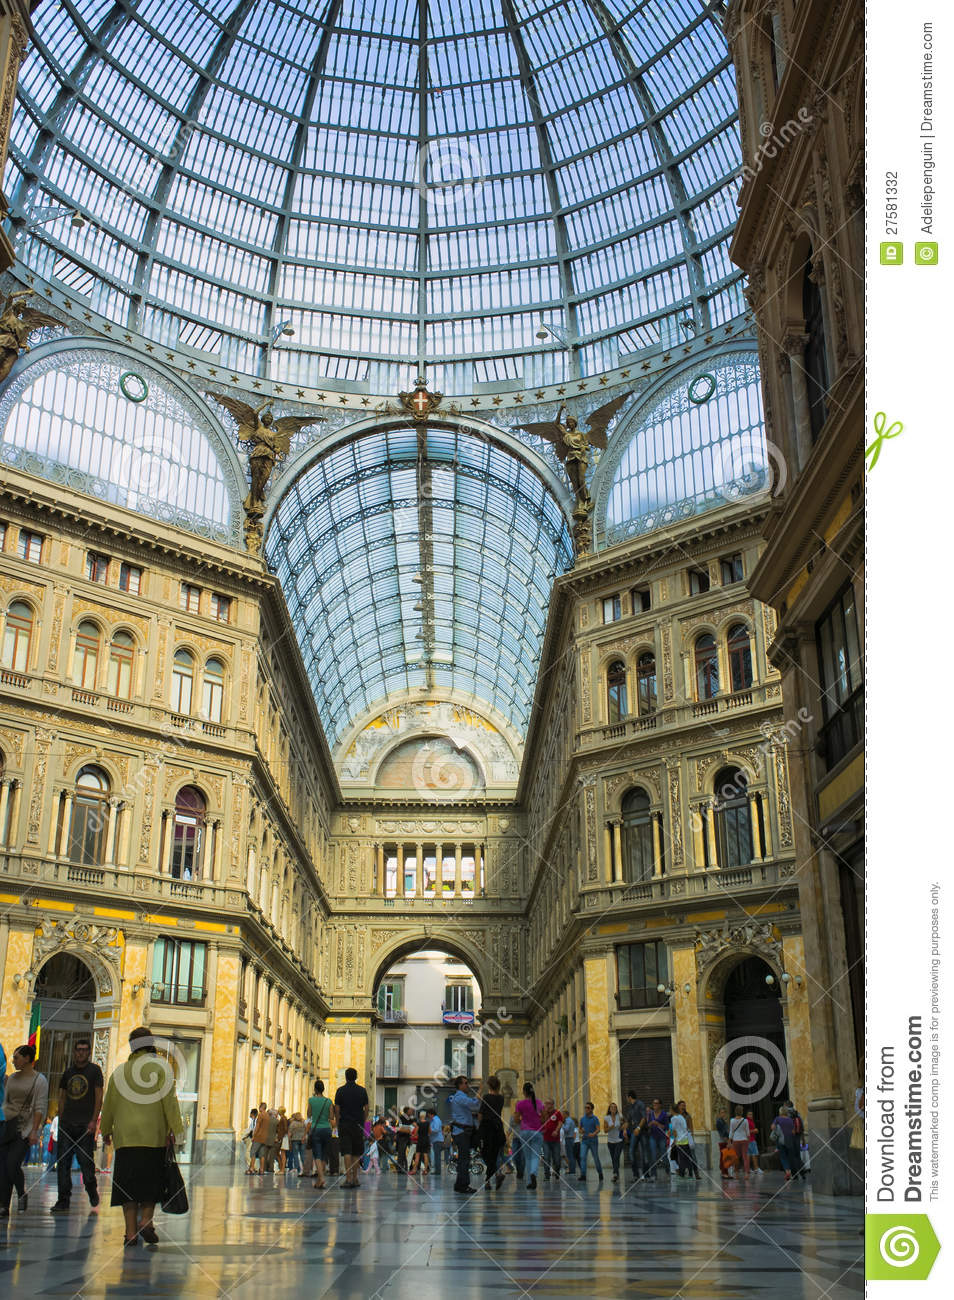 Glass Roof Galleria Naples Italy Editorial Photography